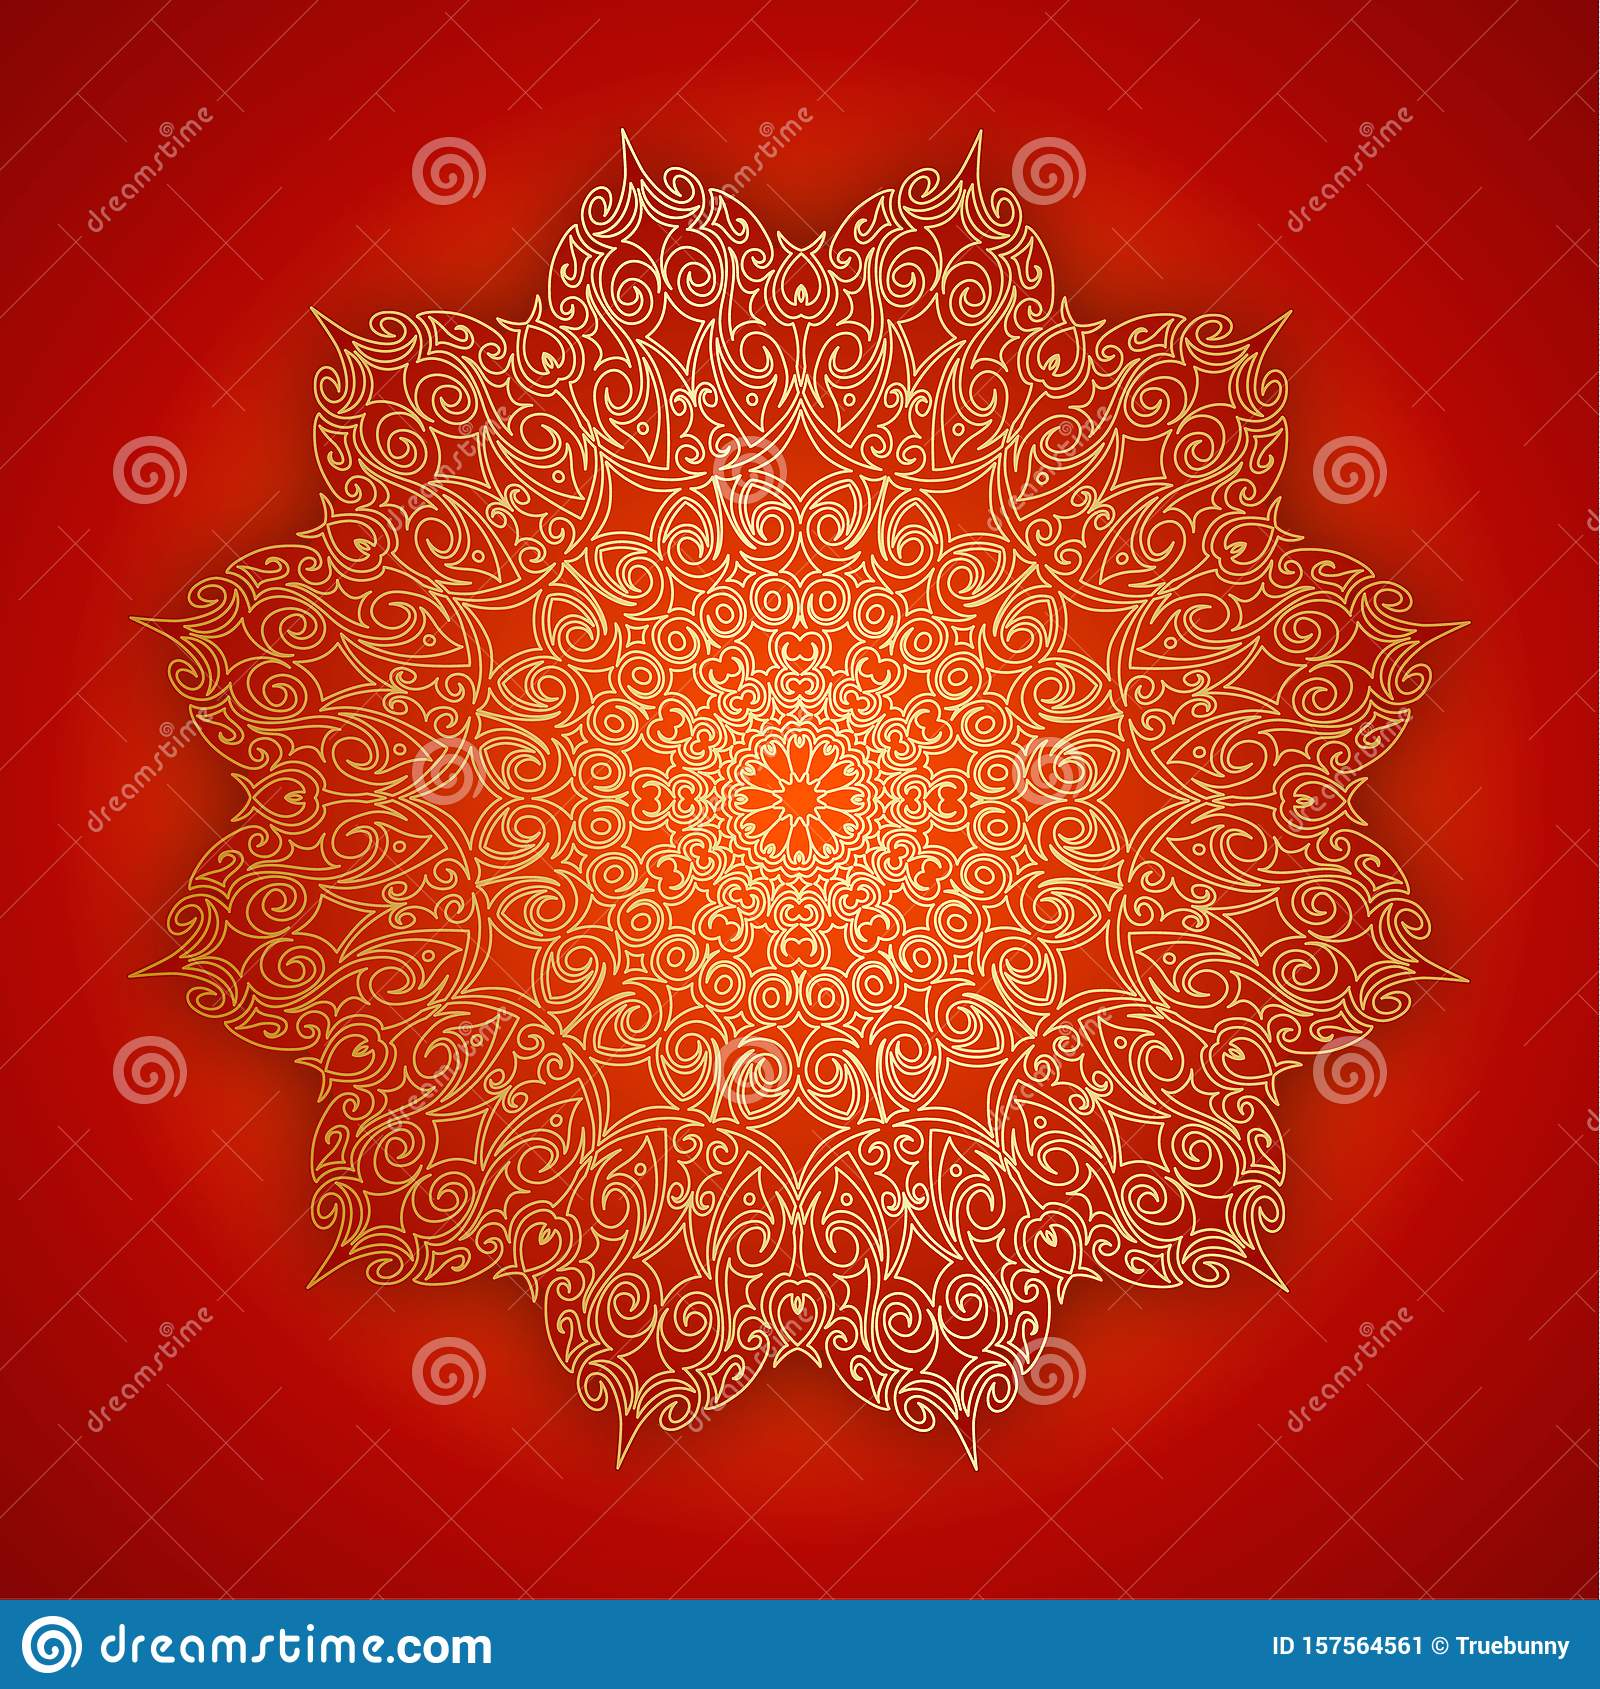 Lace gold mandala with shadow on red background. Vintage decorative elements. Islam, Indian, ottoman symbol. Oriental